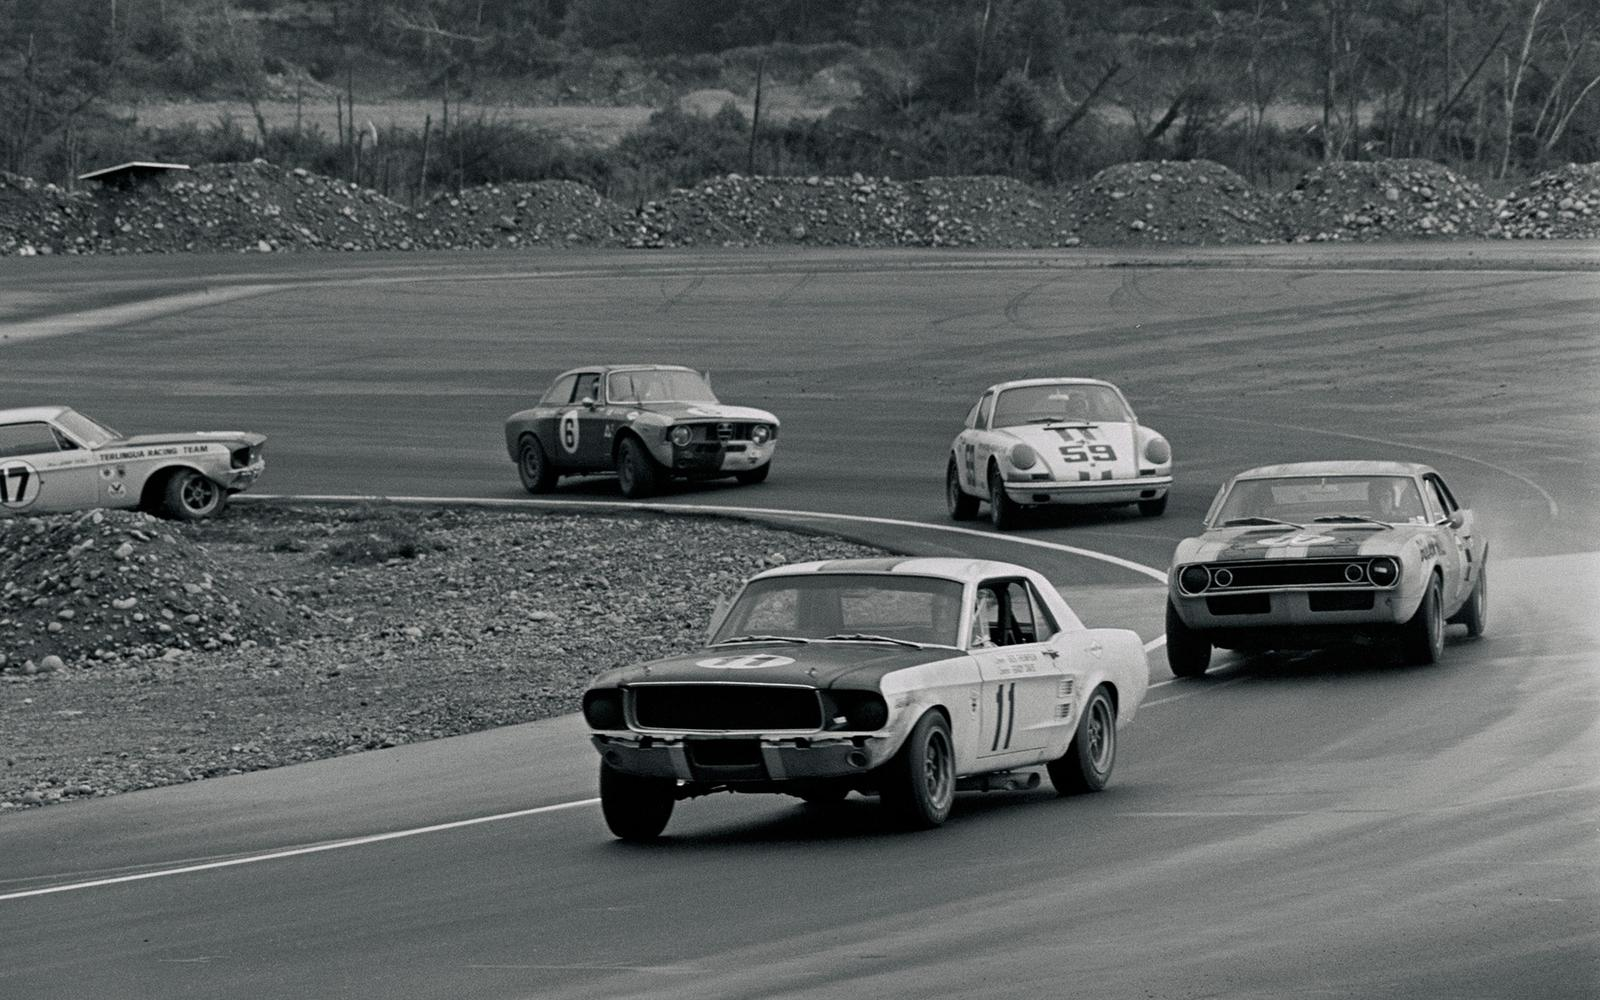 On this Day in Trans Am History: August 6, 1967